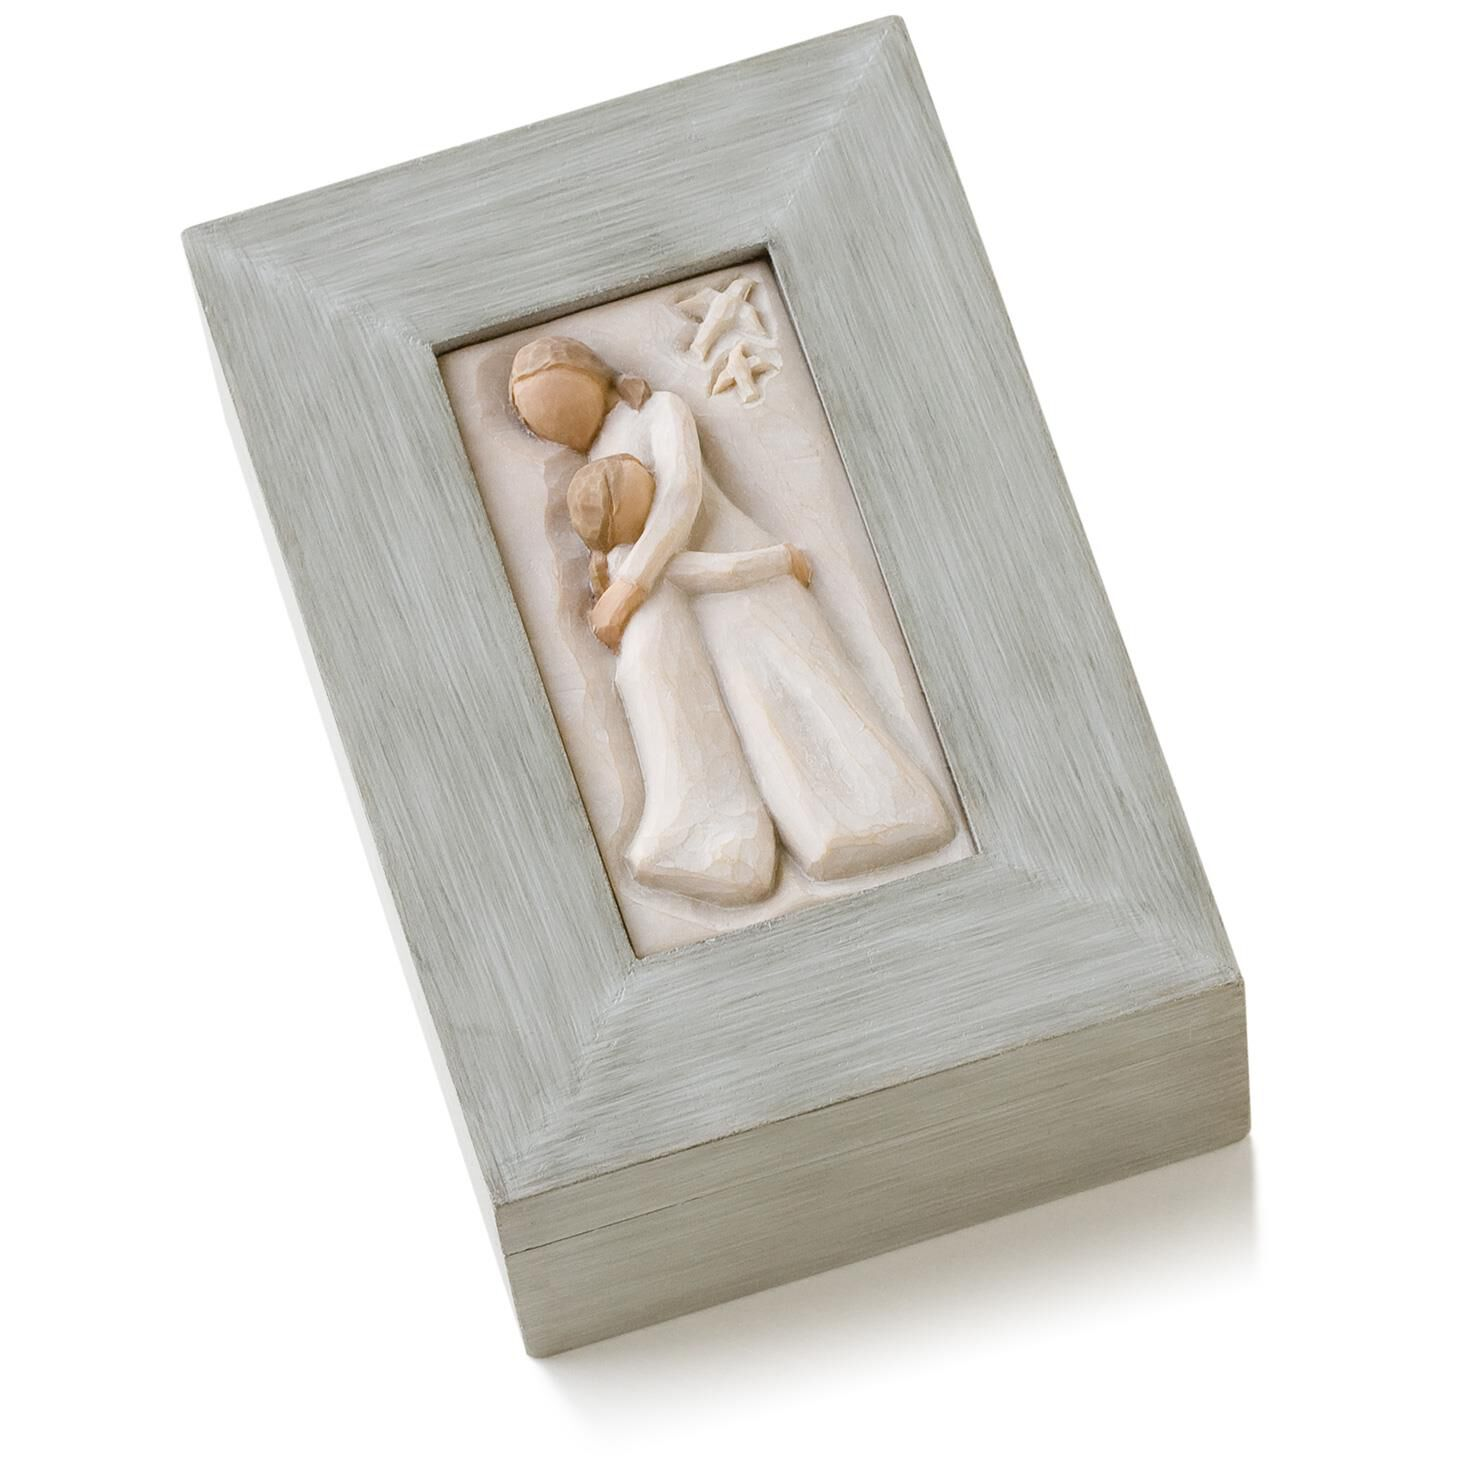 Willow Tree® Mother and Daughter Memory Box - Decorative Accessories - Hallmark  sc 1 st  Hallmark & Willow Tree® Mother and Daughter Memory Box - Decorative ... Aboutintivar.Com